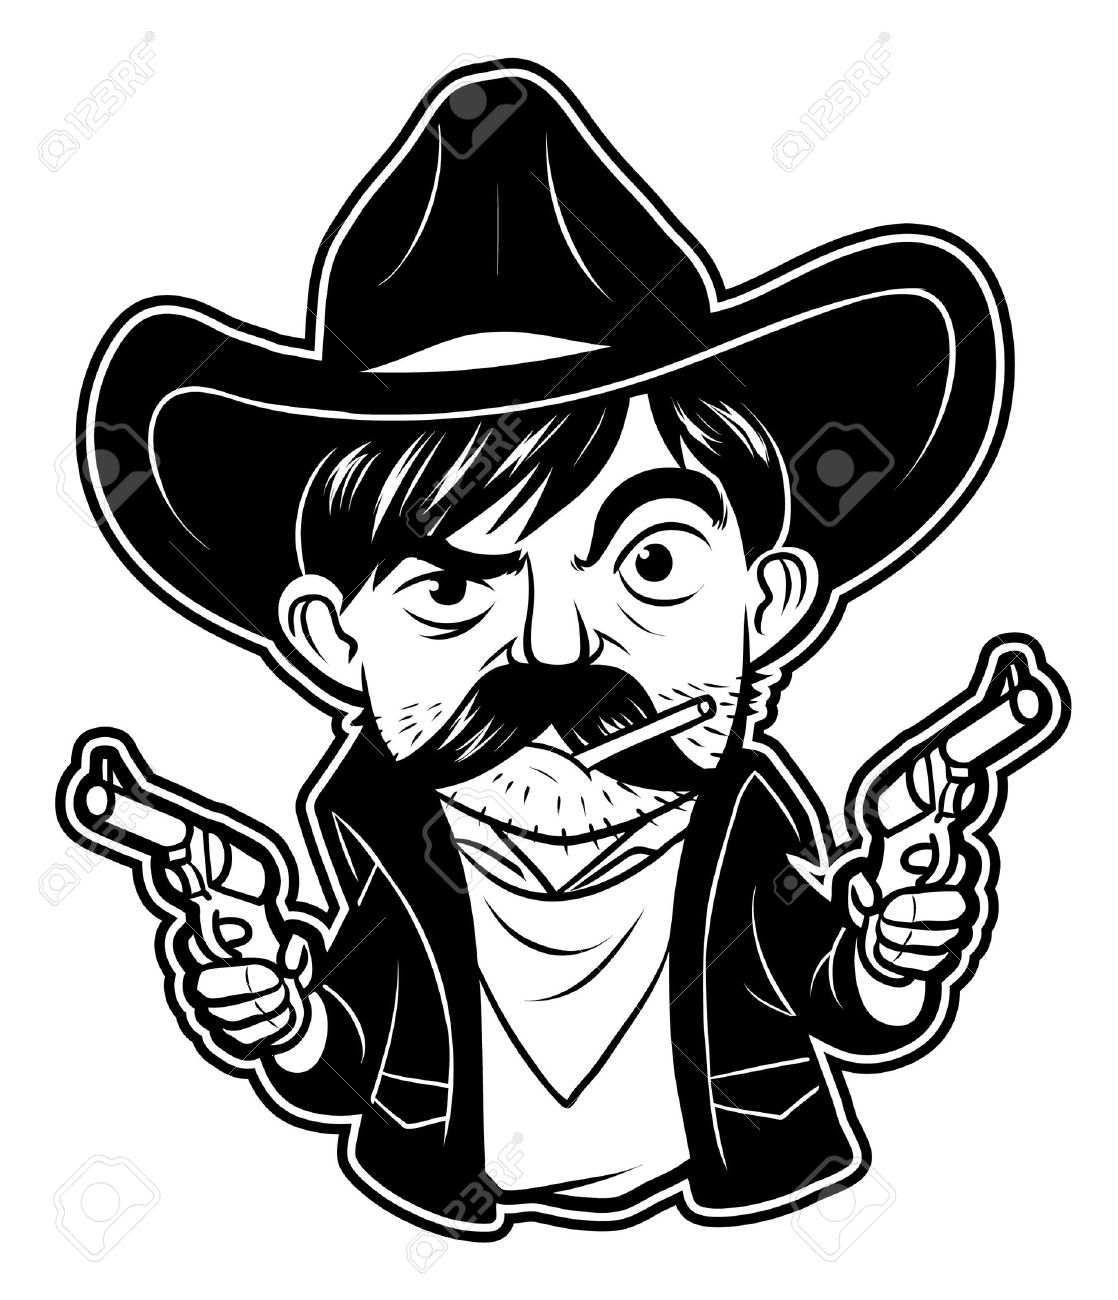 black and white clipart cowboy Stock Vector - 19499063